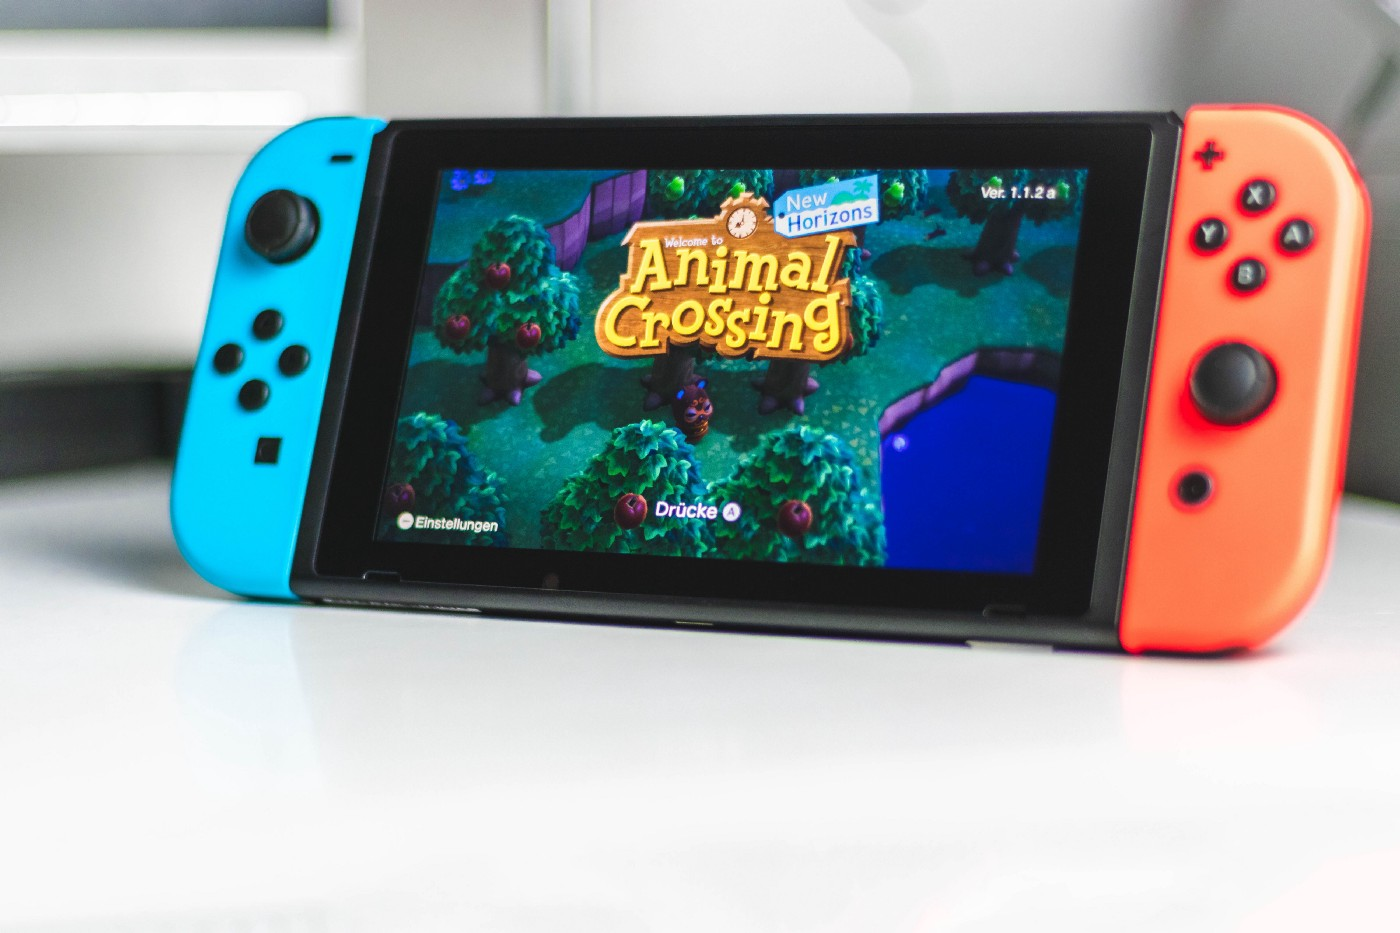 Nintendo Switch displaying Animal Crossing: New Horizons